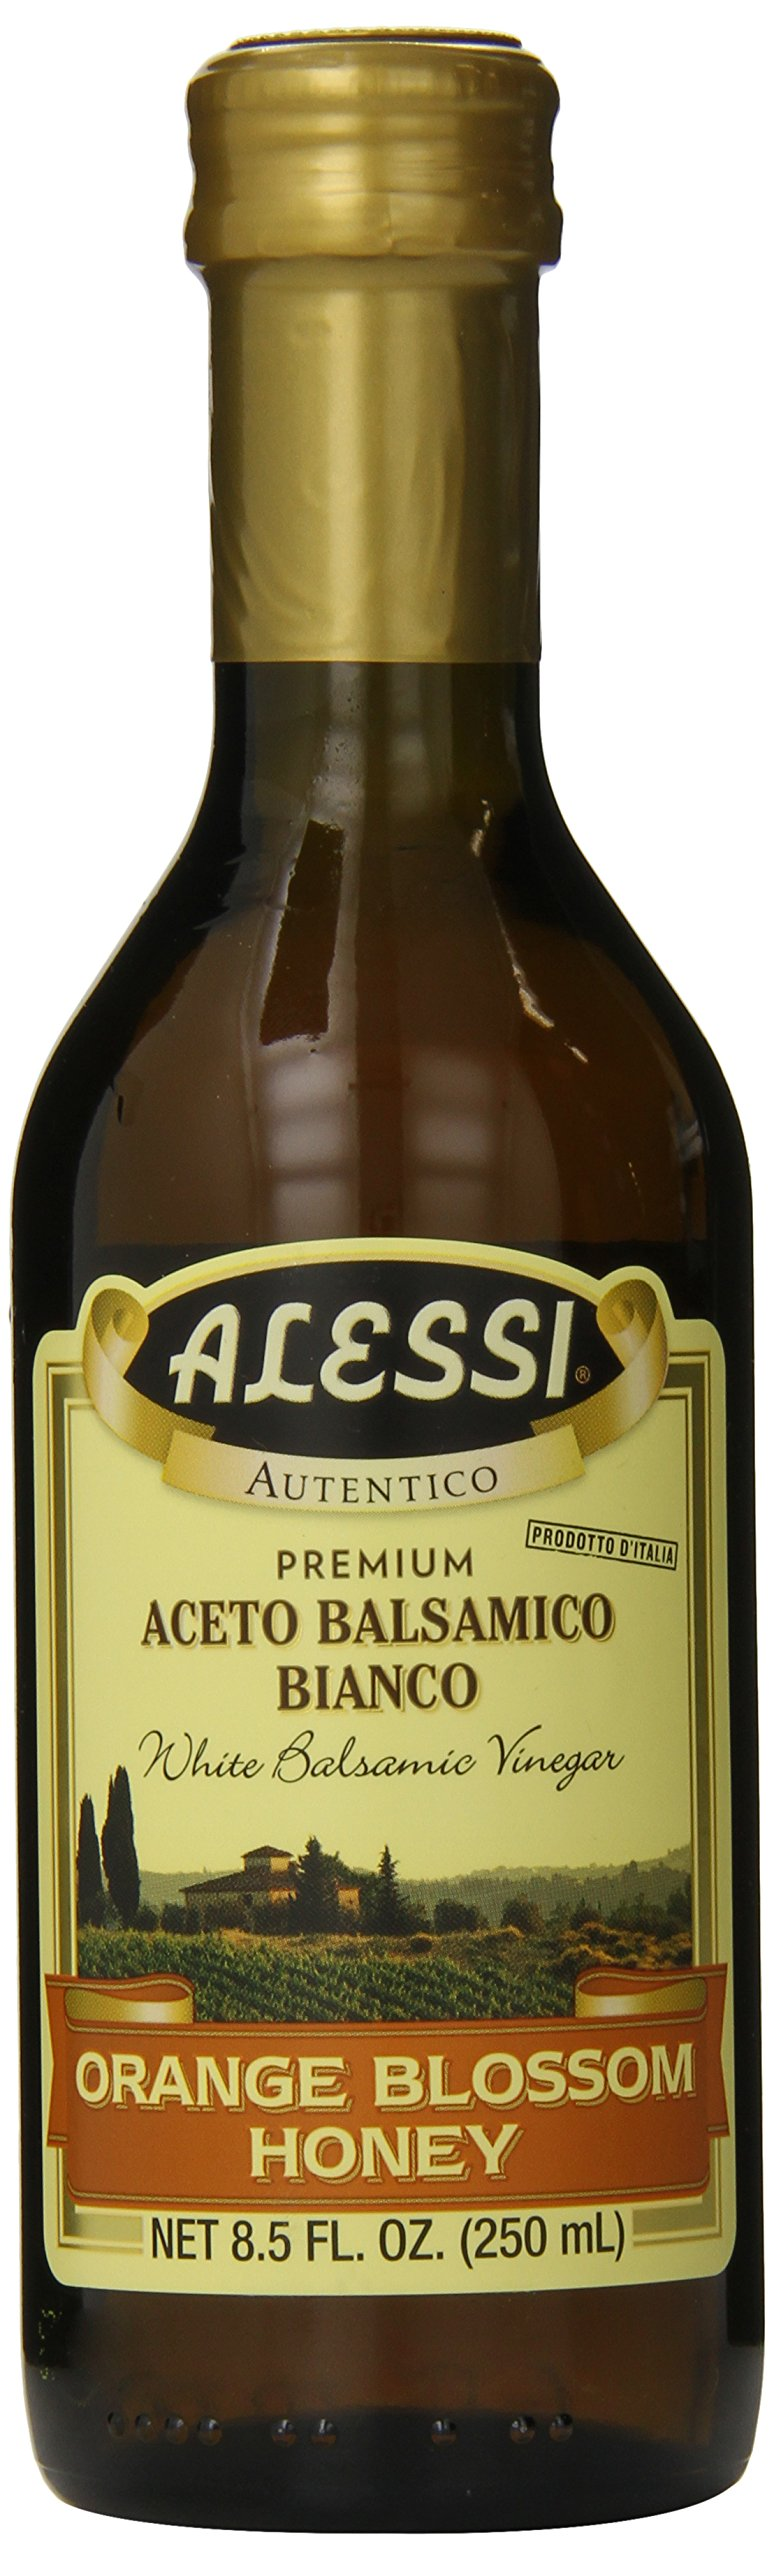 Alessi Honey Balsamic Vinegar, 8.5 Ounce 1 A deposit found in the bottle is a natural occurrence of the product and does not deter the quality. Alessi Orange Blossom Honey Balsamic Vinegar is a ligh